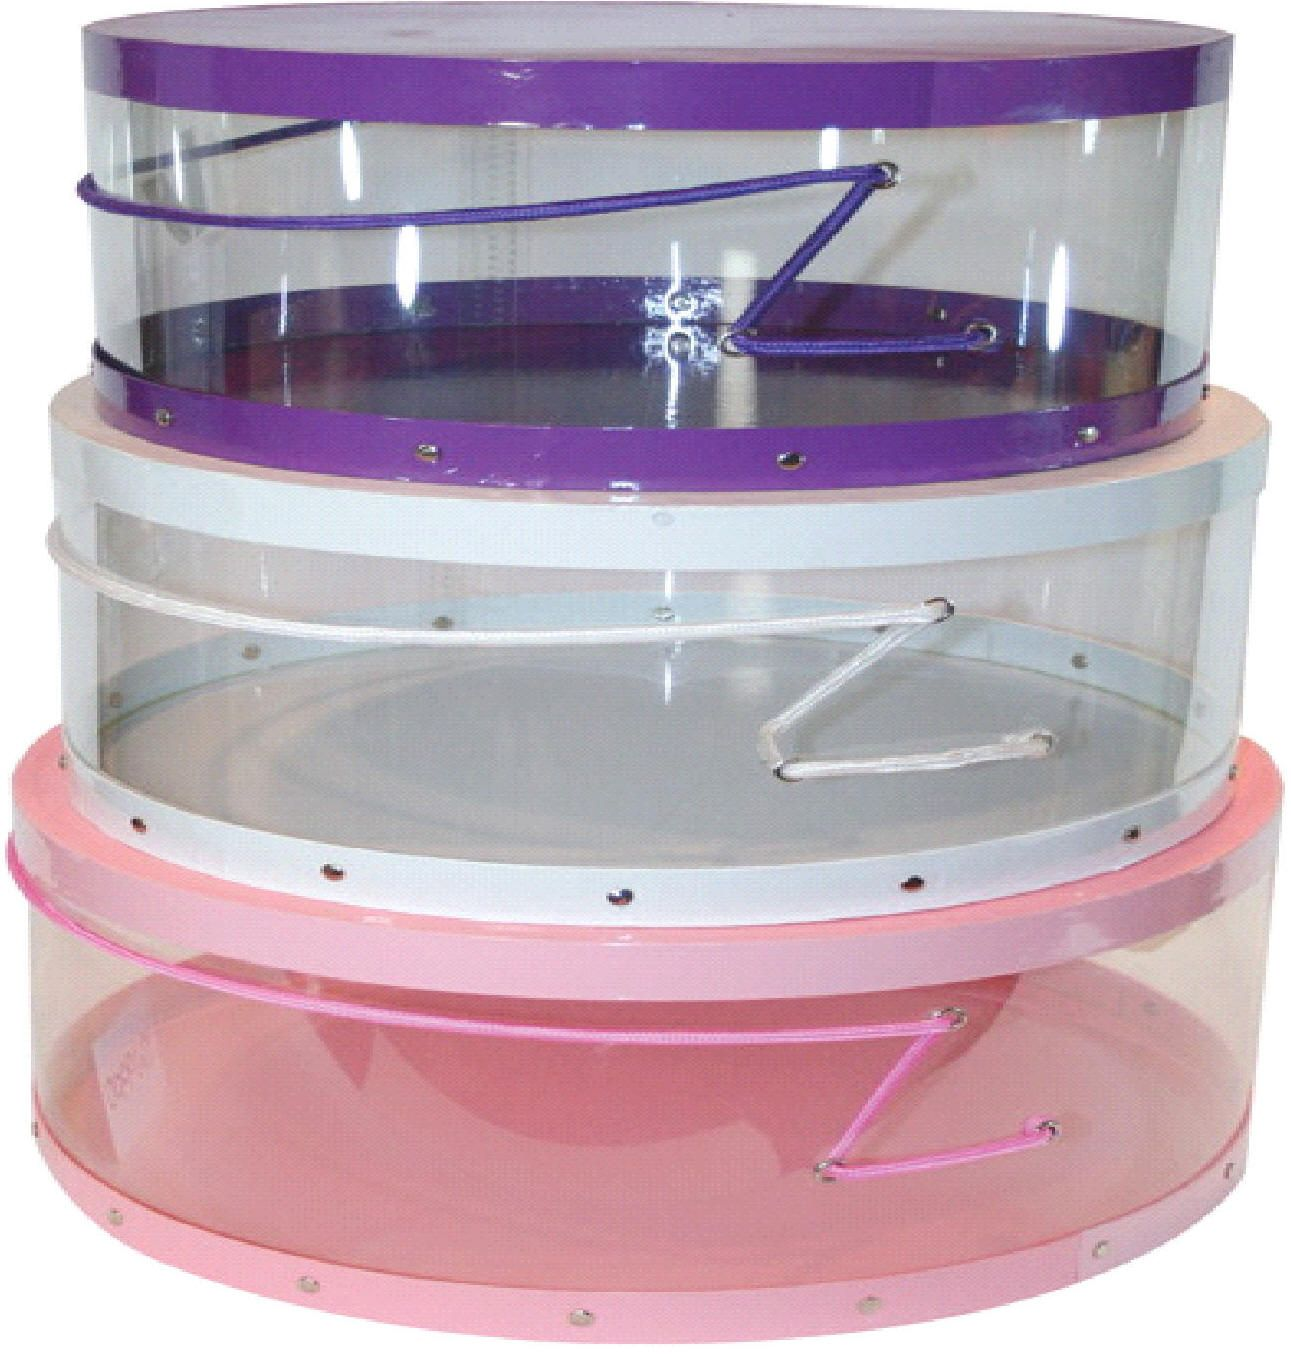 Extra Large Round Hat Box Price 35 00 Buy Two Or More For 30 00 Each Size 21 X 8 1 2 Hat Storage Shabby Chic Boxes Hat Boxes